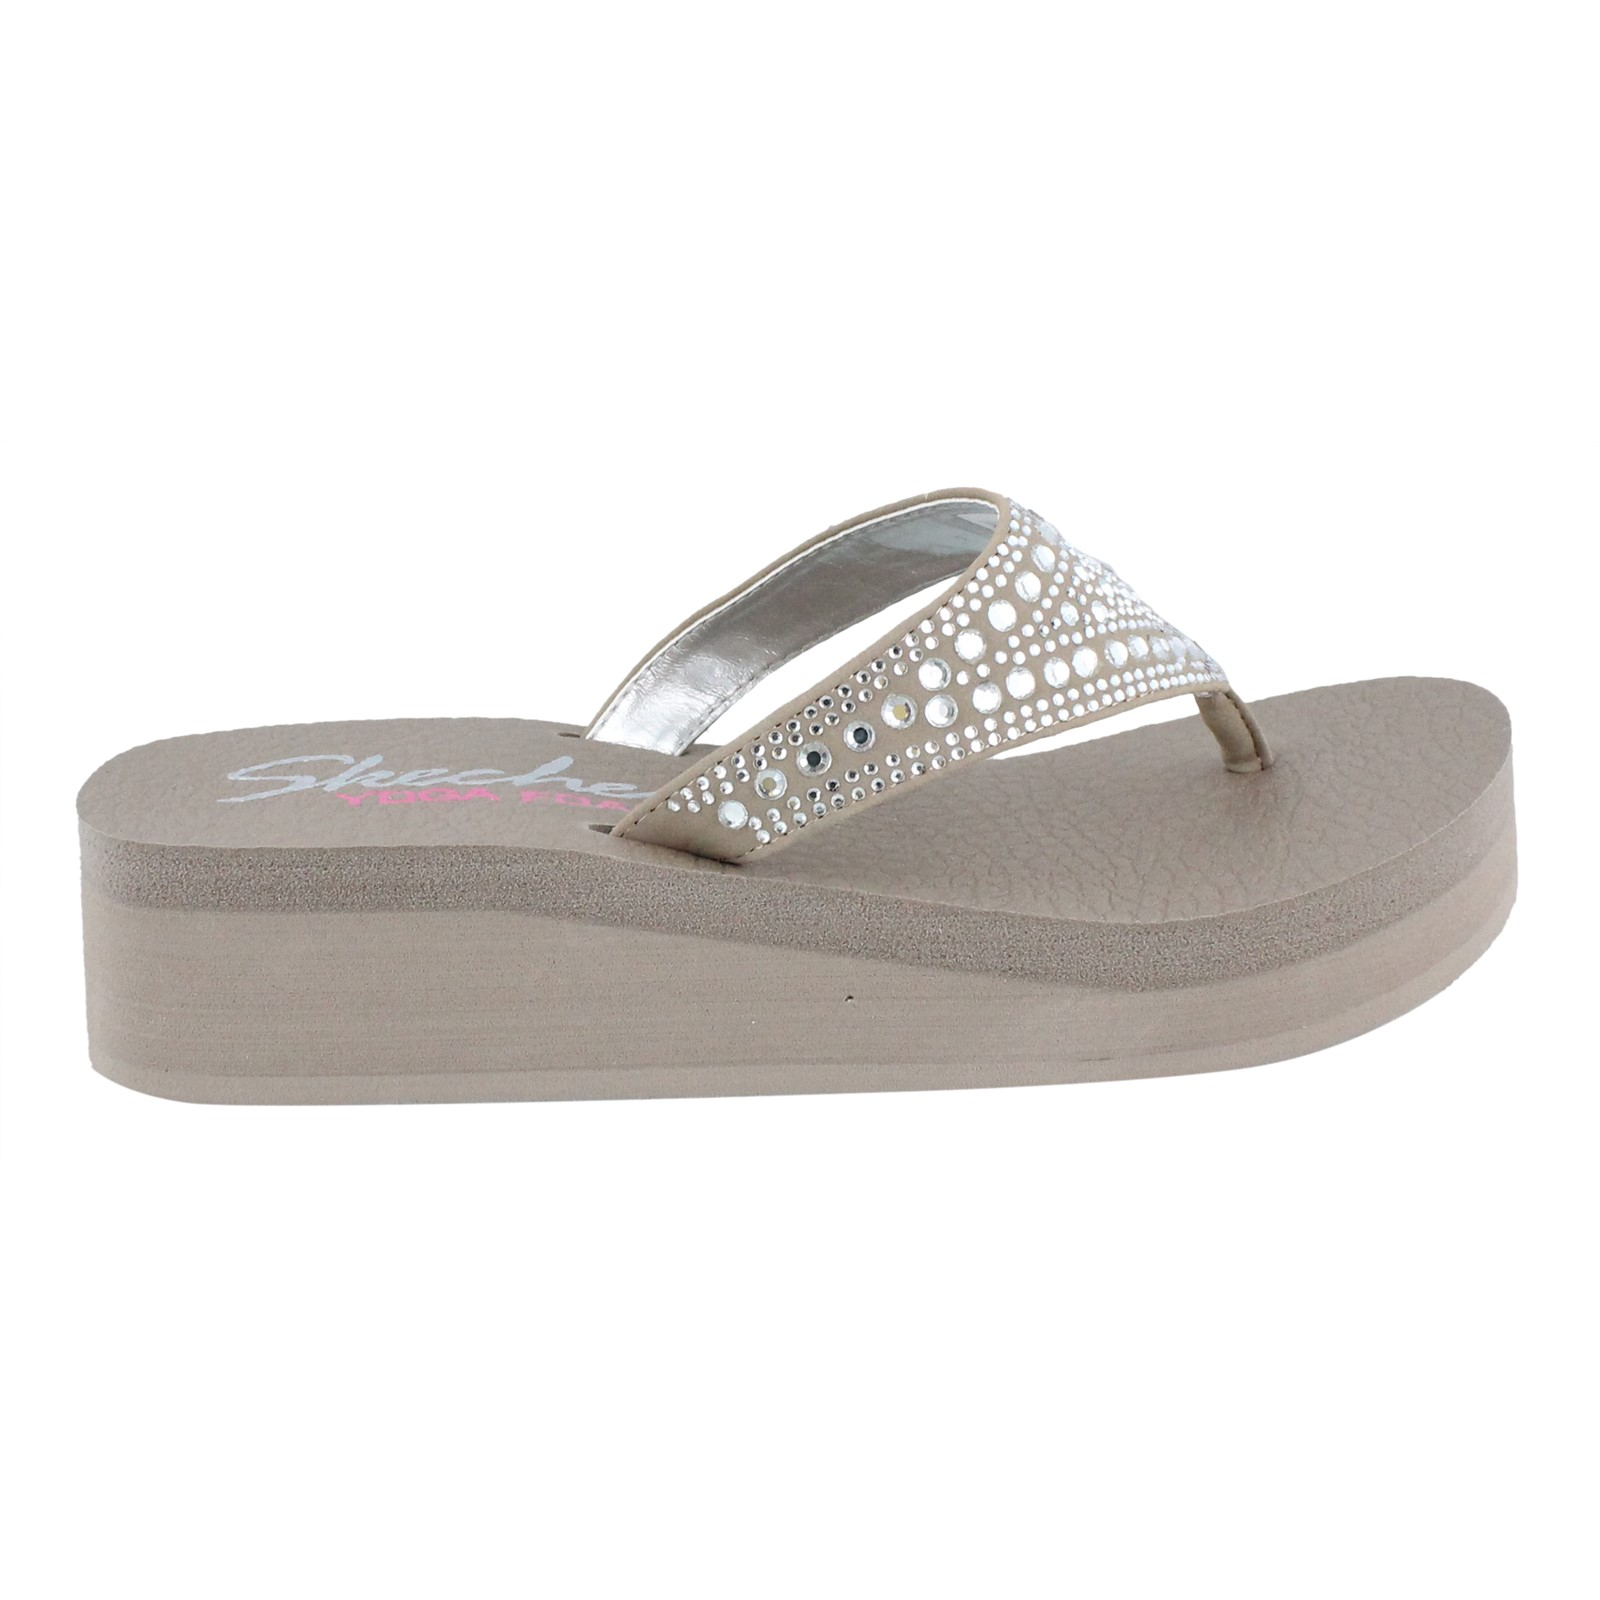 ed60e48438 Women's Skechers, Vinyasa Bindu Thong | Peltz Shoes